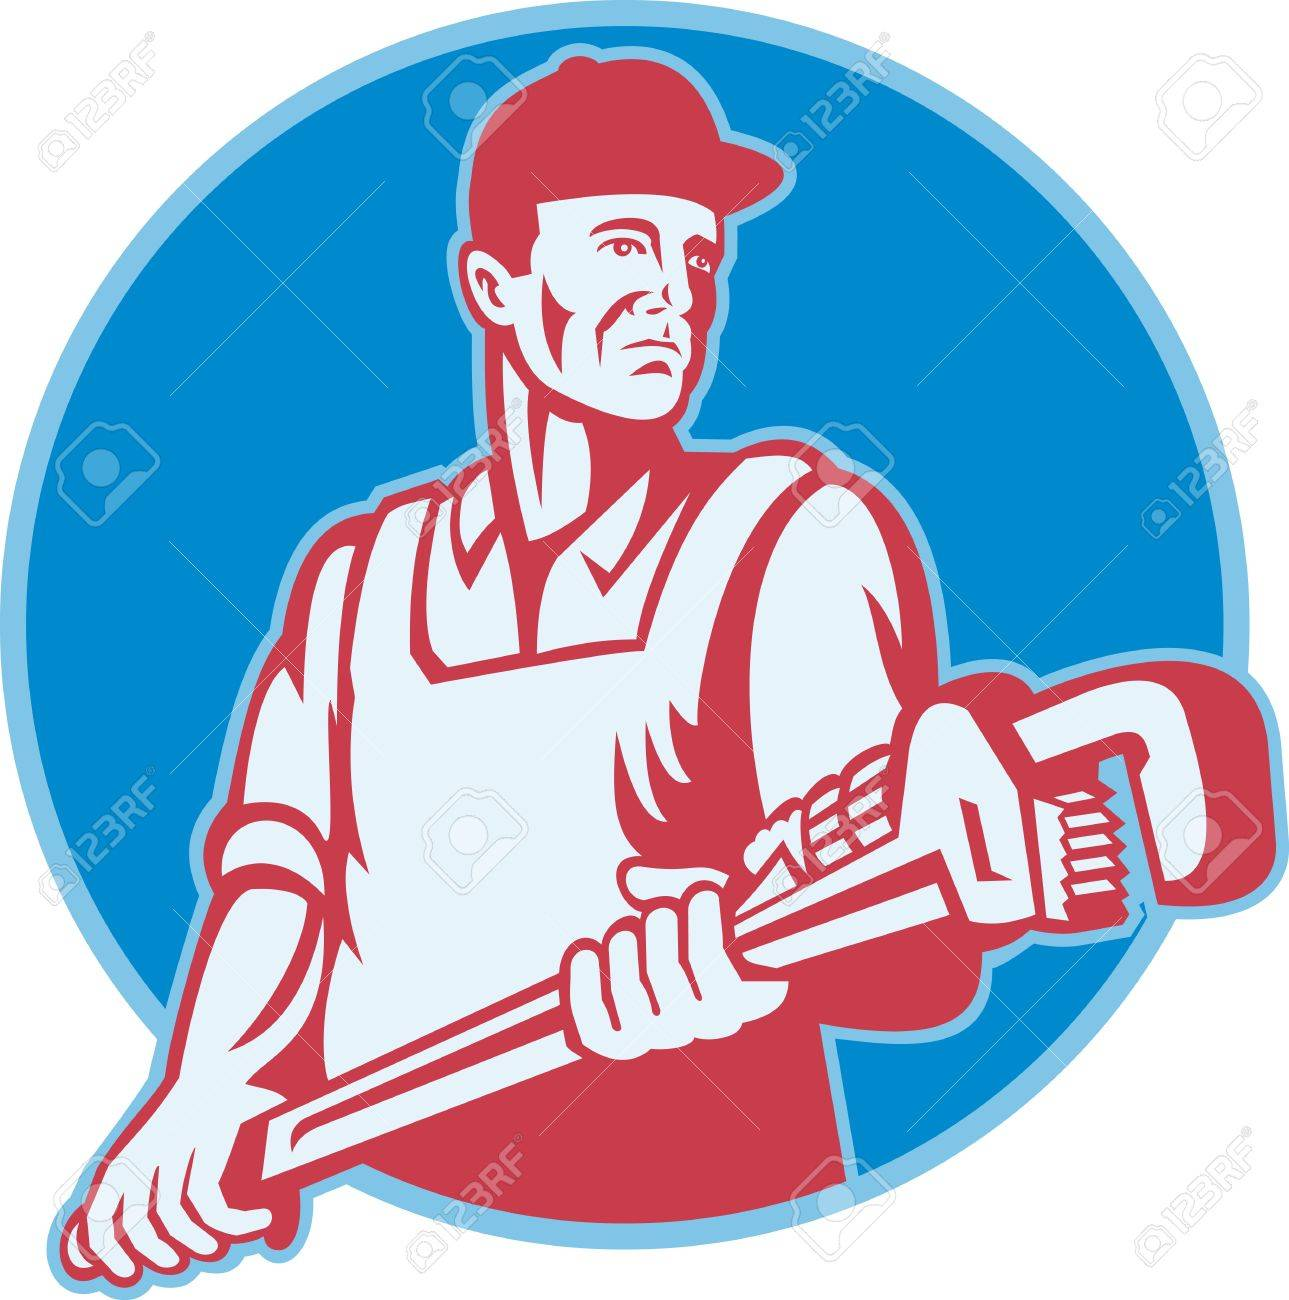 Retro illustration of a plumber worker carrying a giant adjustable monkey wrench viewed from front set inside circle on isolated white background. Stock Vector - 14305982